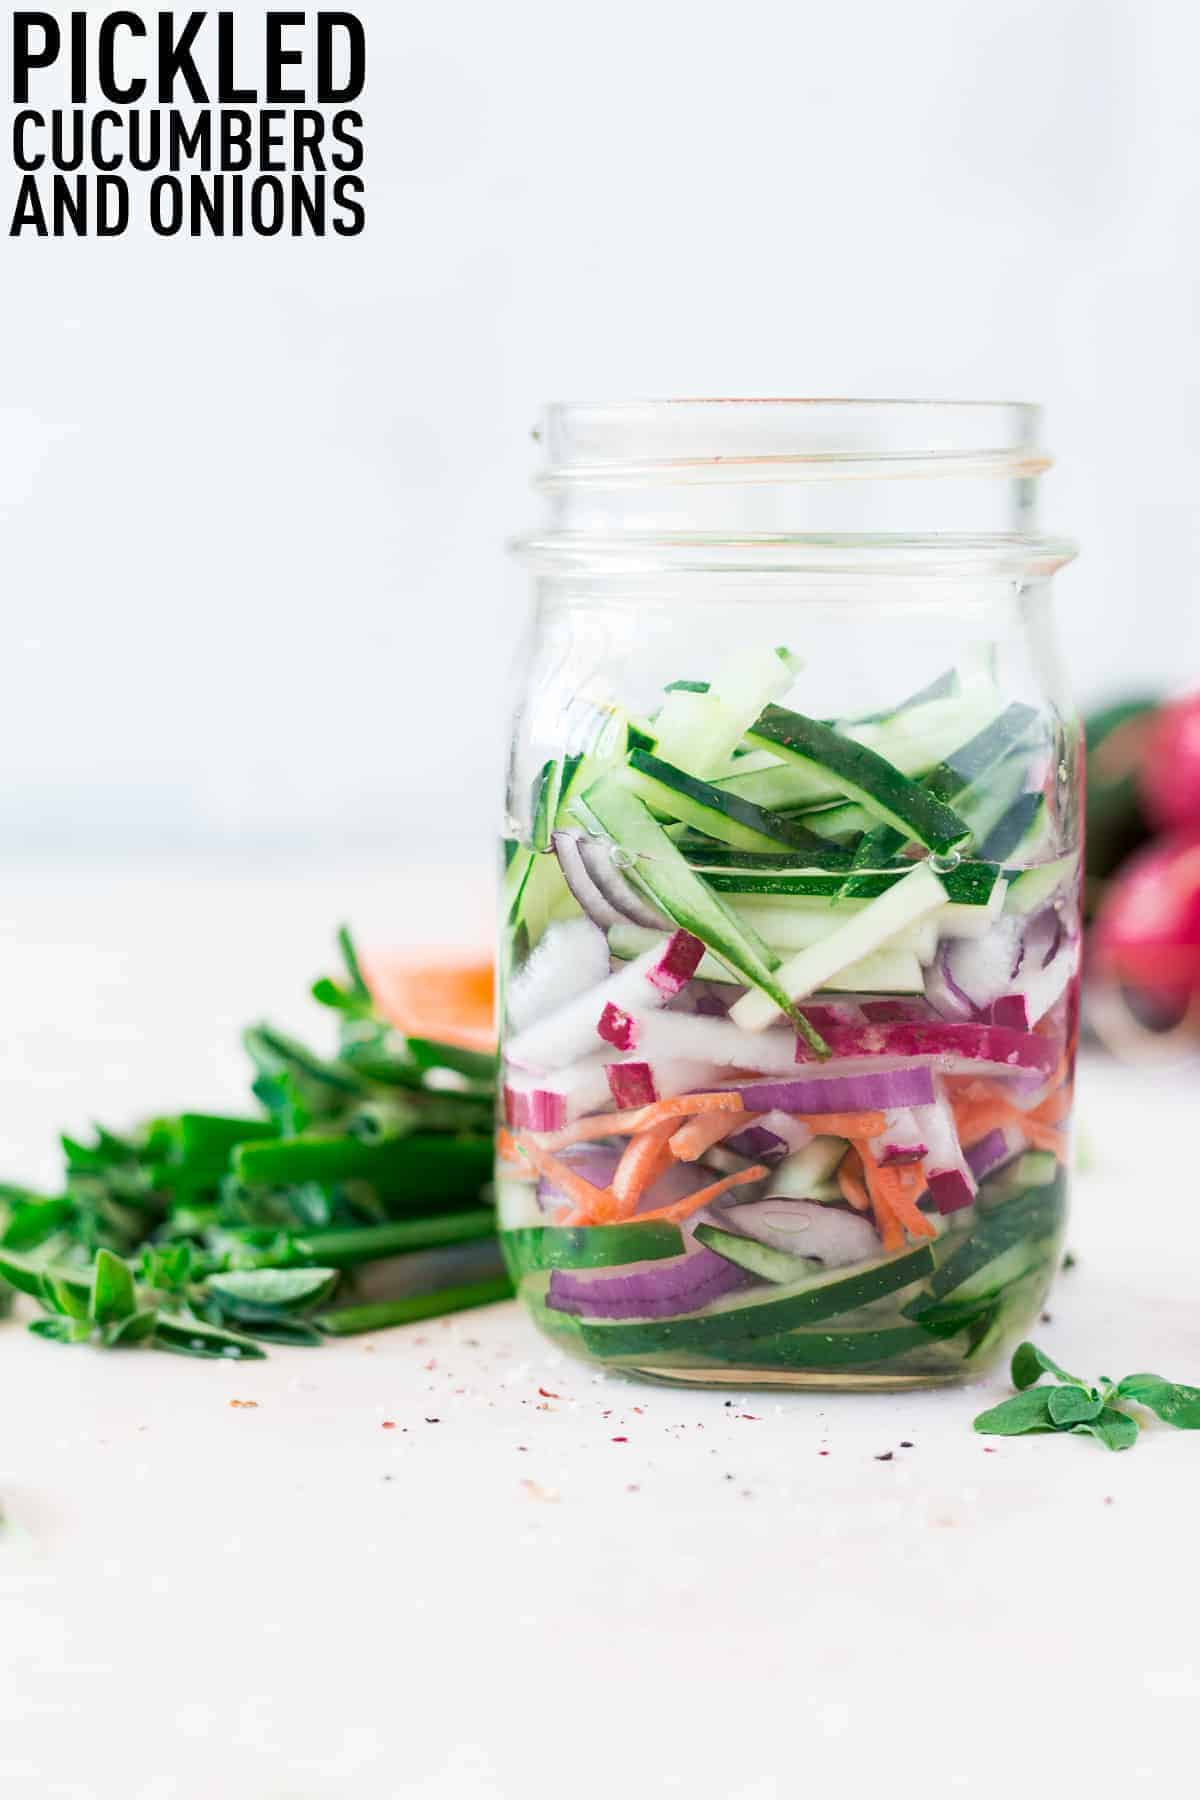 Quick pickled cucumbers and onions made with optional carrots and radishes make the perfect addition to salads, sandwiches, and more!